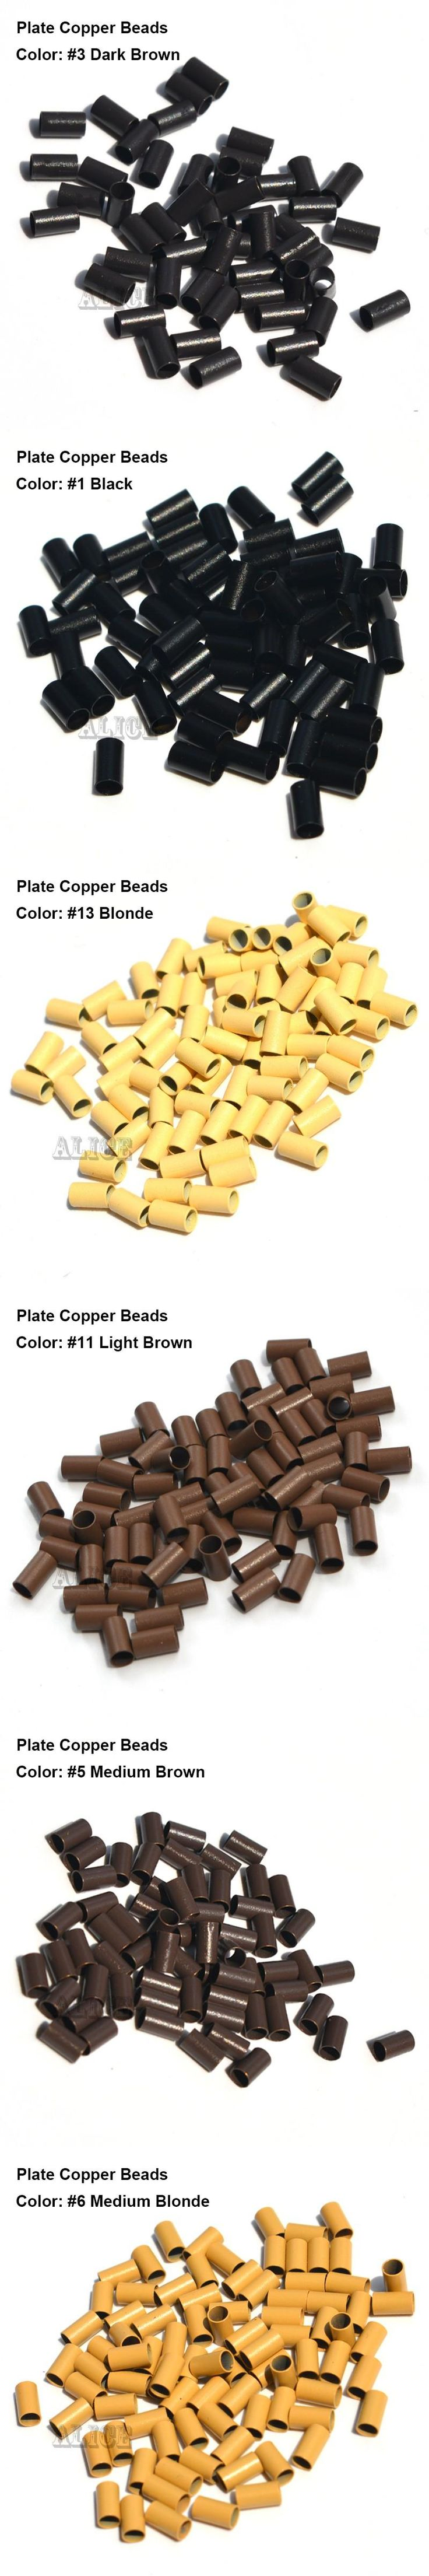 Plate Edge Copper Micro Rings 3.4*3.0*6.0mm Micro Rings Tube1000pcs/Lot Micro Ring Hair Extensions Tools